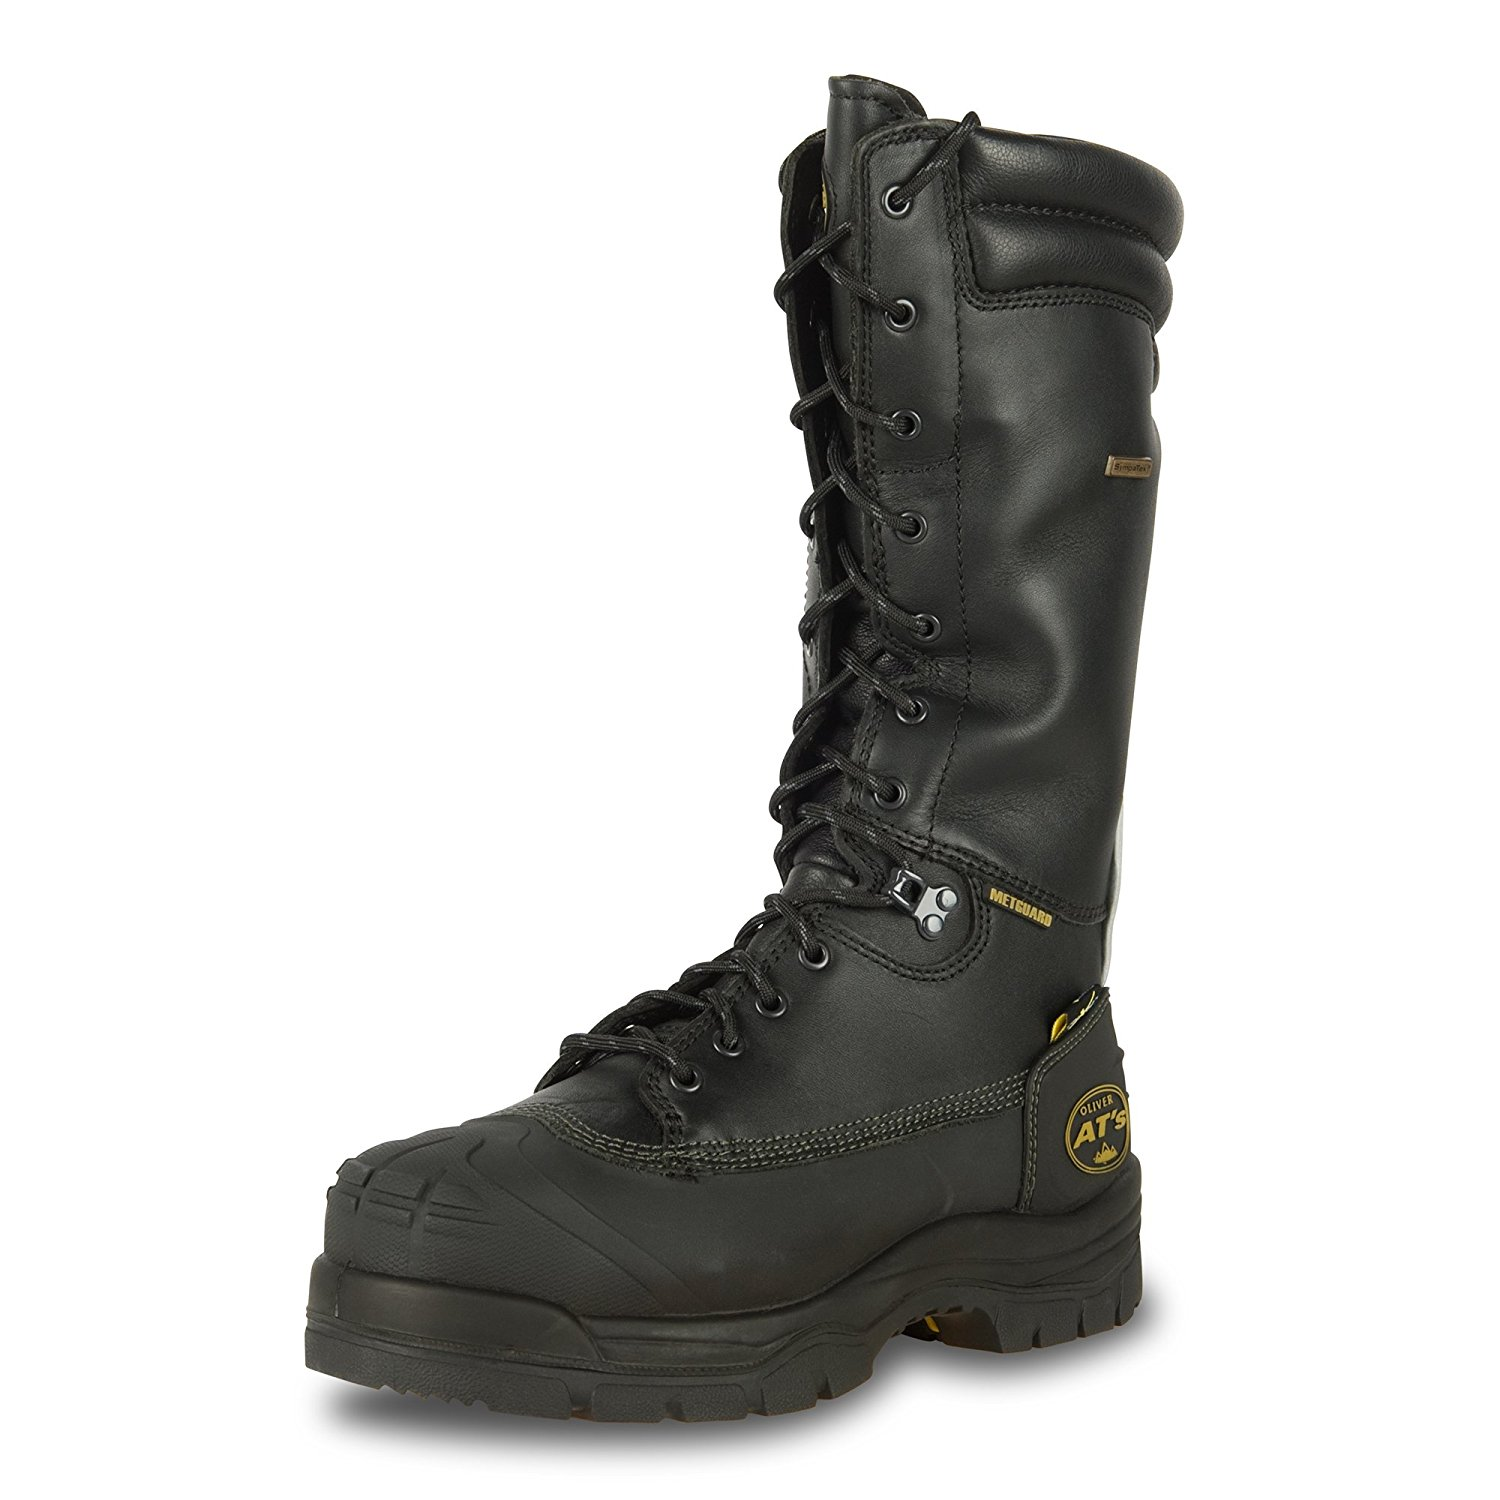 7f29ec37a29 Cheap Metatarsal Safety Boots, find Metatarsal Safety Boots deals on ...